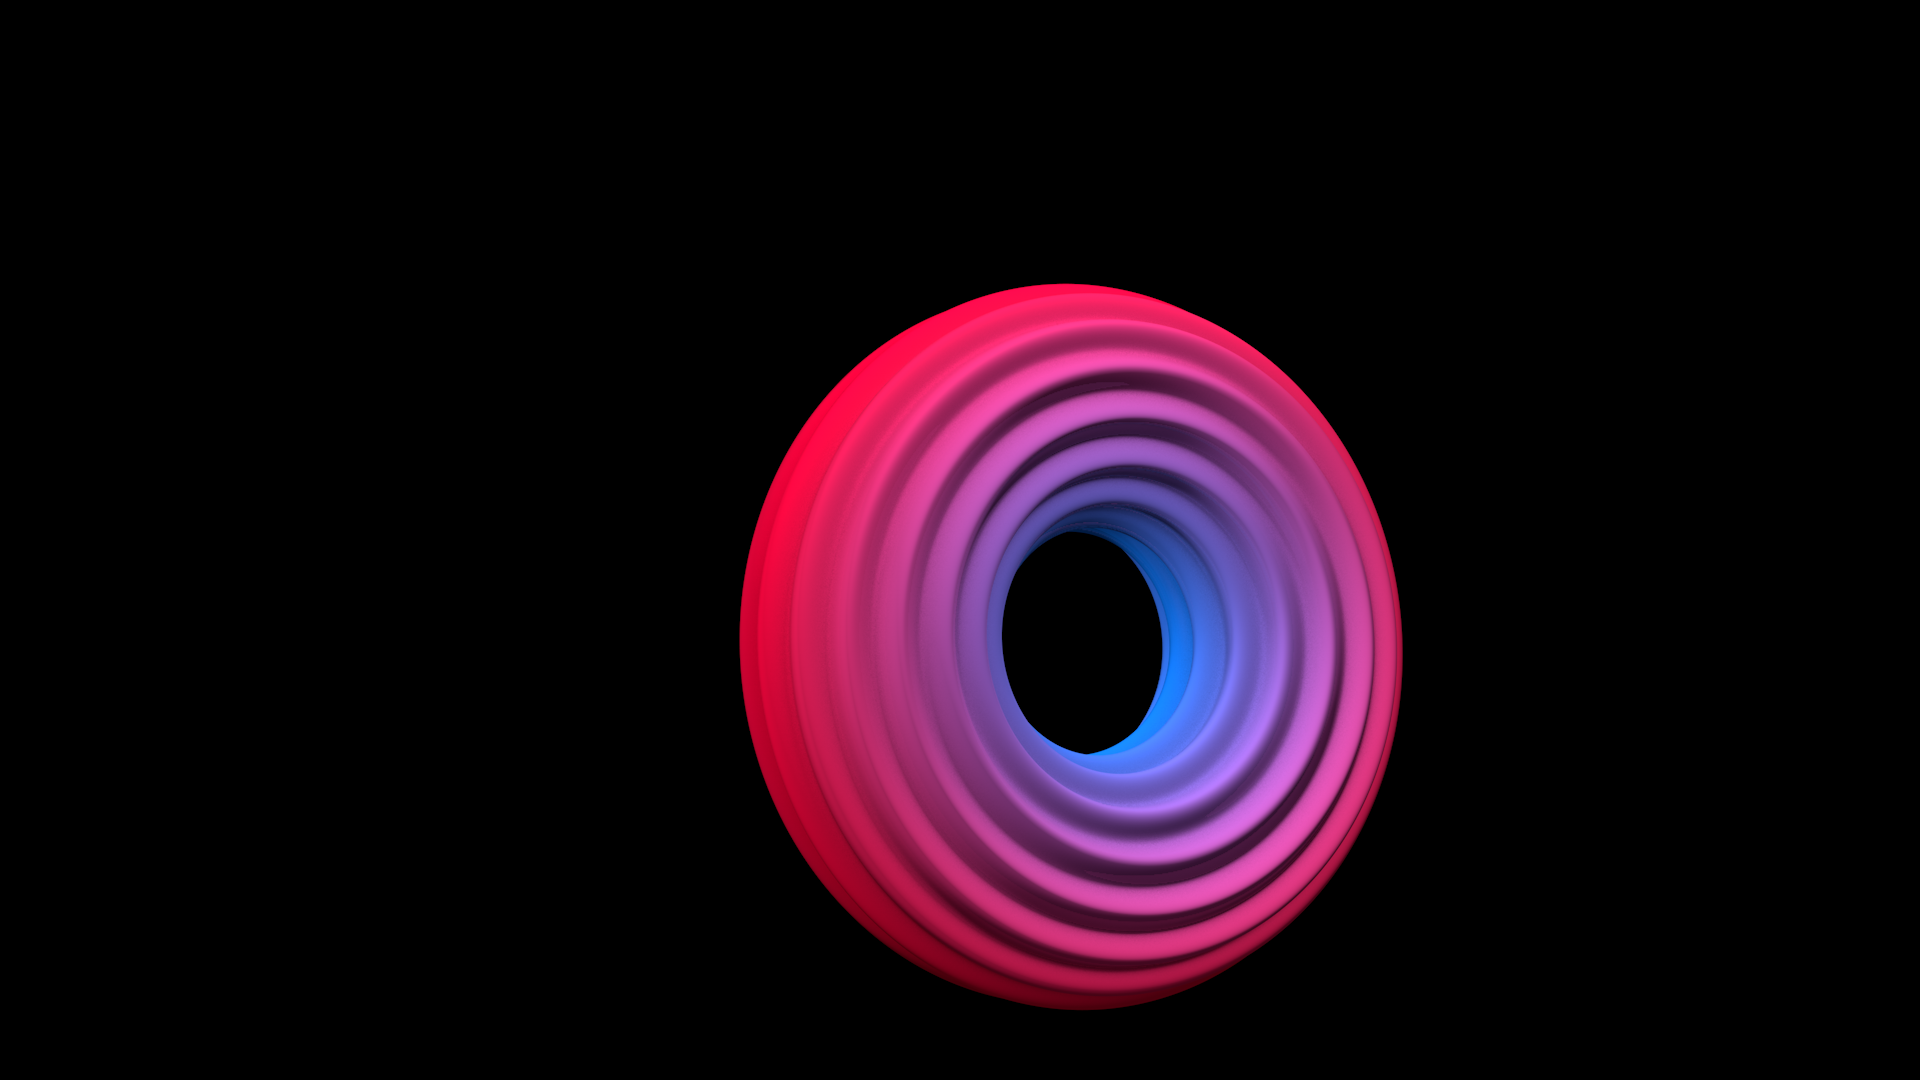 NSS SPIRAL EXAMPLE GLOSSY v10.png